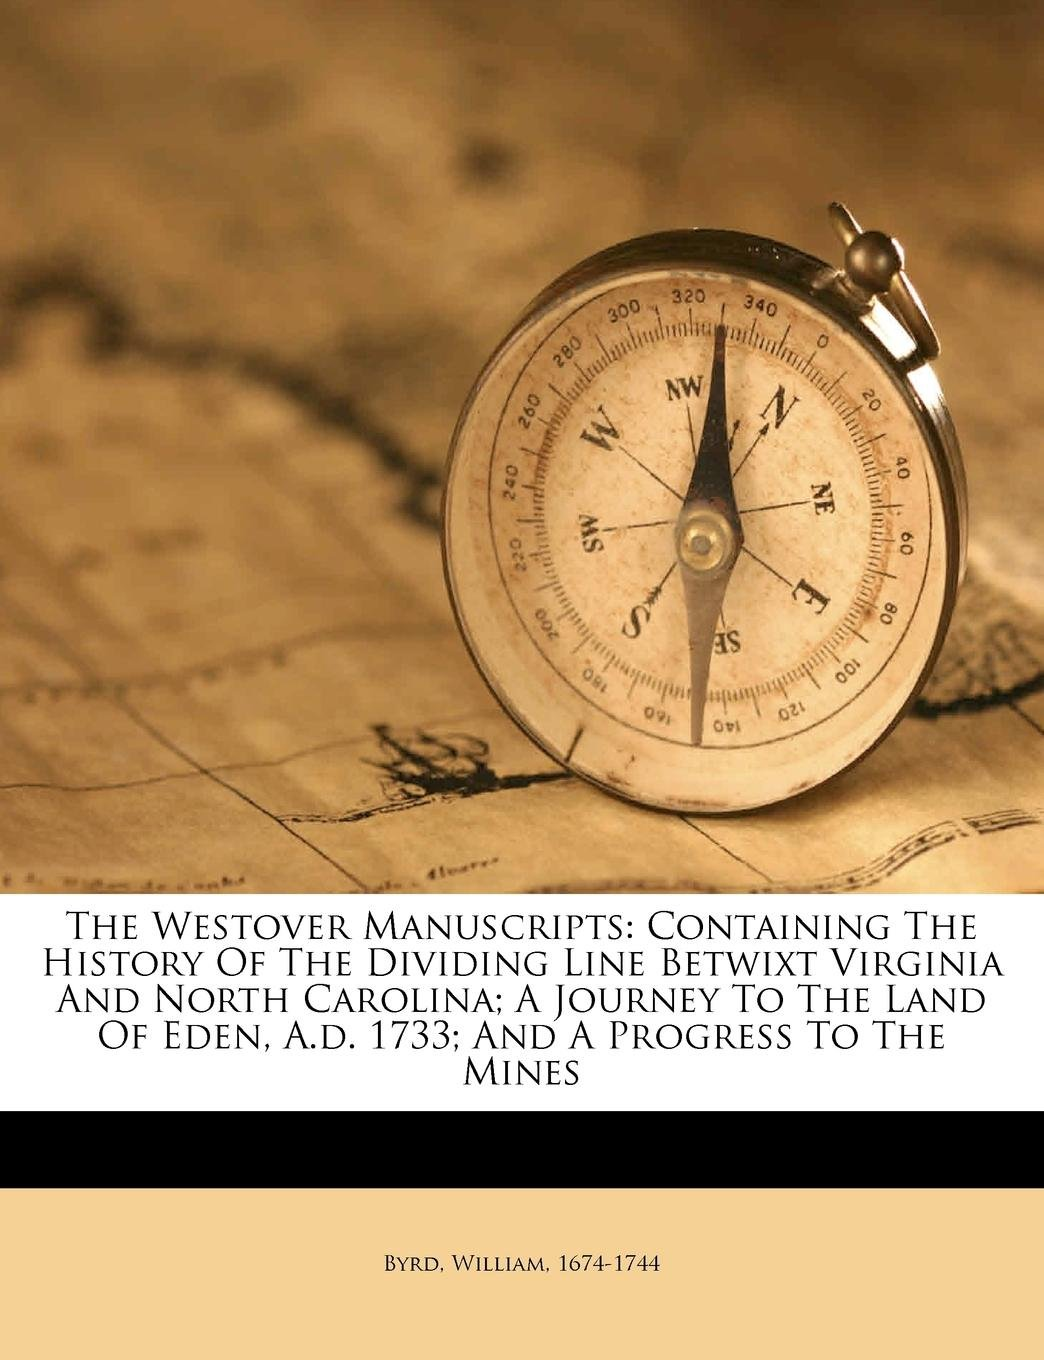 Download The Westover manuscripts: containing the history of the dividing line betwixt Virginia and North Carolina; a journey to the land of Eden, A.D. 1733; and a progress to the mines ebook